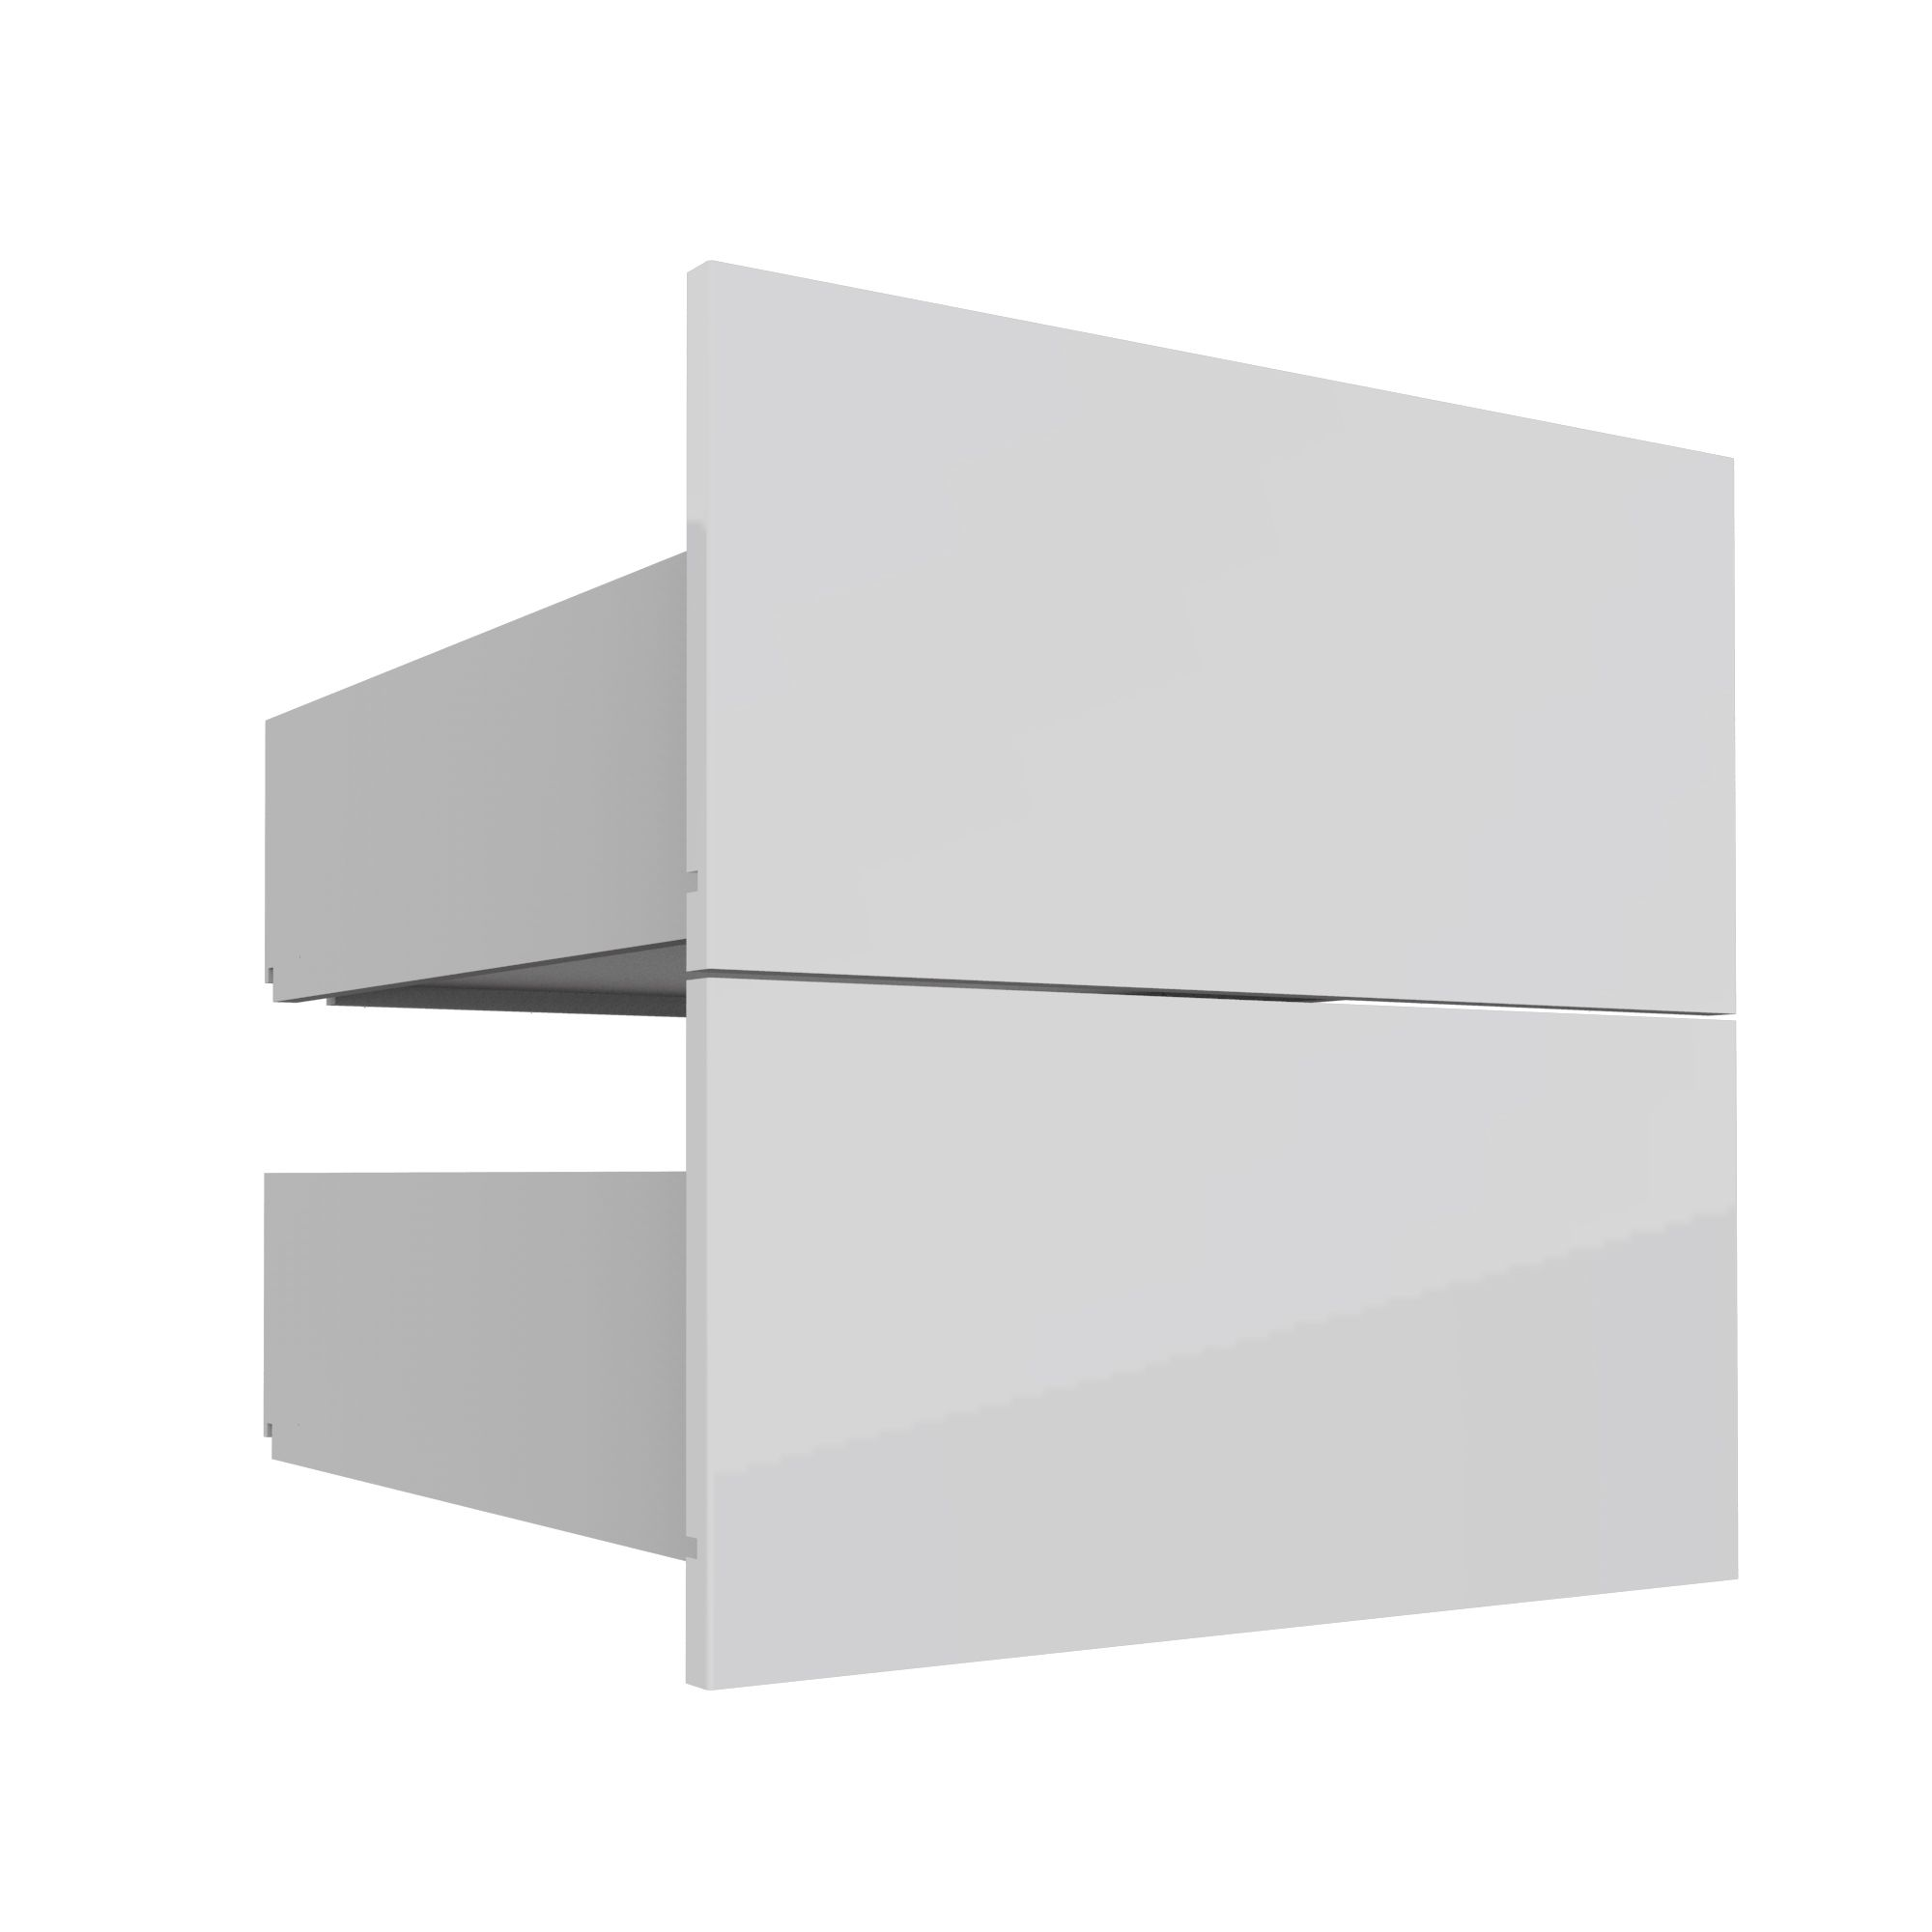 Darwin Modular White & Gloss External Drawers (h)237mm (w)500mm (d)566mm